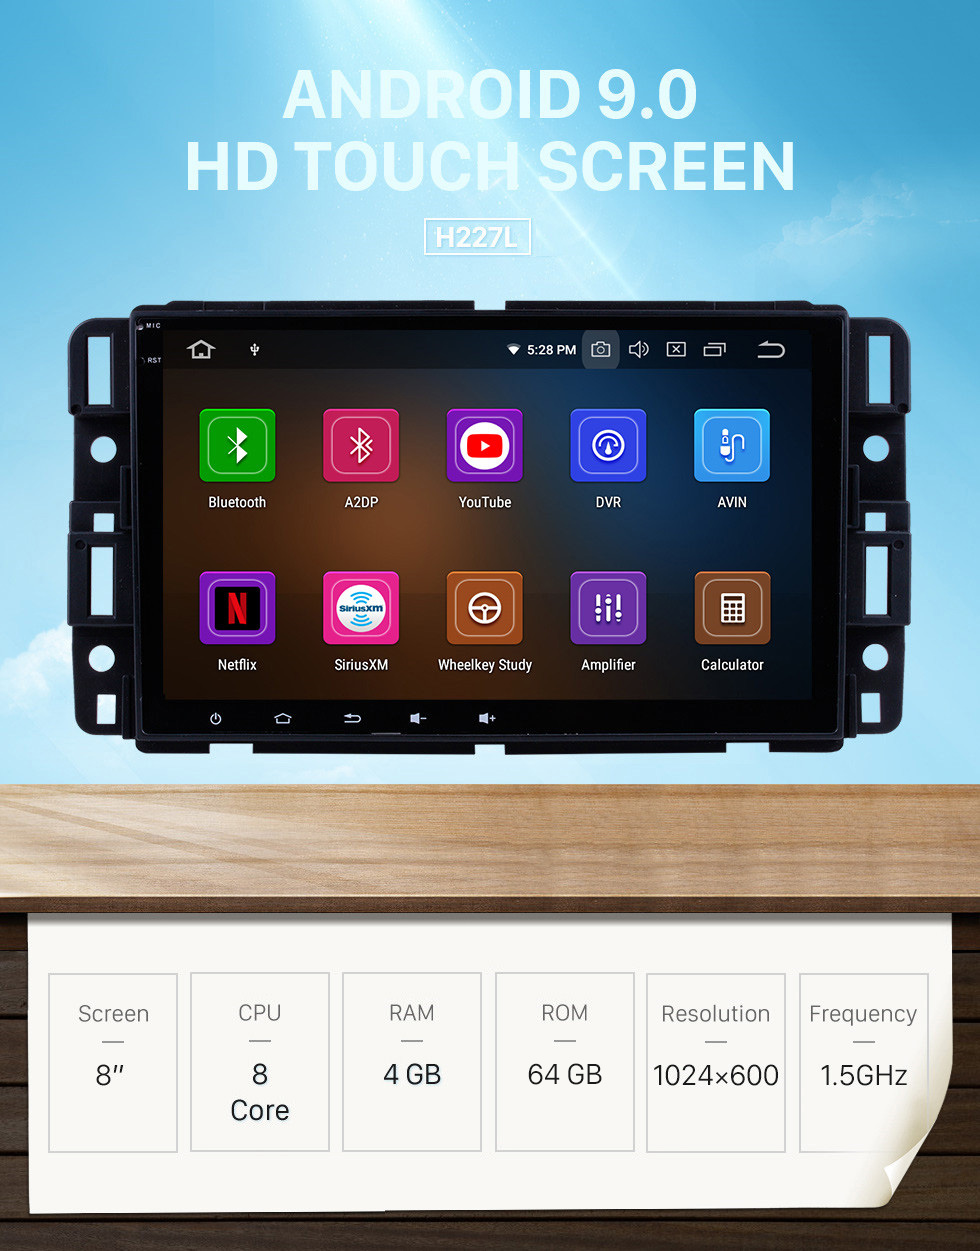 Seicane 8 Inch HD Touchscreen Android 9.0 Aftermarket Radio Head Unit For 2007 2008 2009 2010 2011 Chevrolet Chevy Silverado Car Stereo GPS Navigation System Bluetooth Phone WIFI Support OBDII DVR 1080P Video Steering Wheel Control Mirror Link